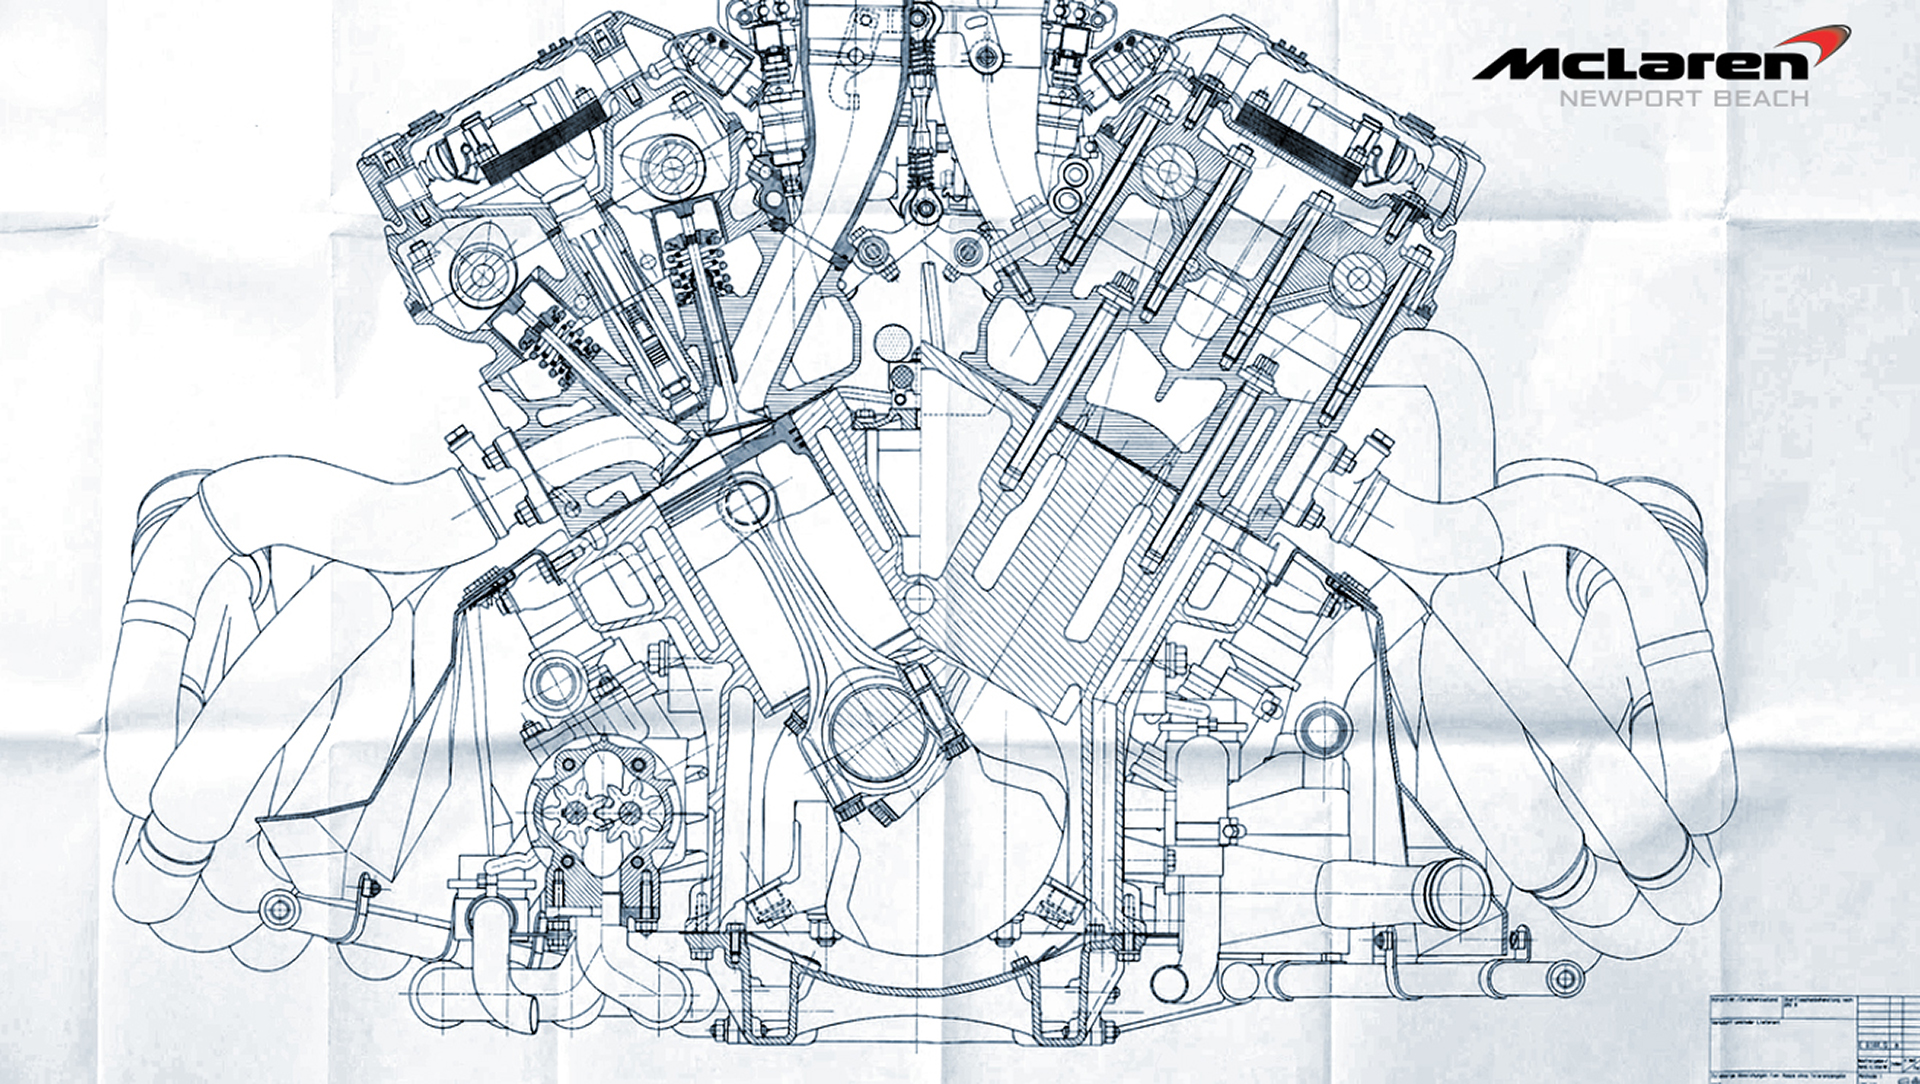 McLaren - engine / moteur - M838T - sketch tech / dessin technique